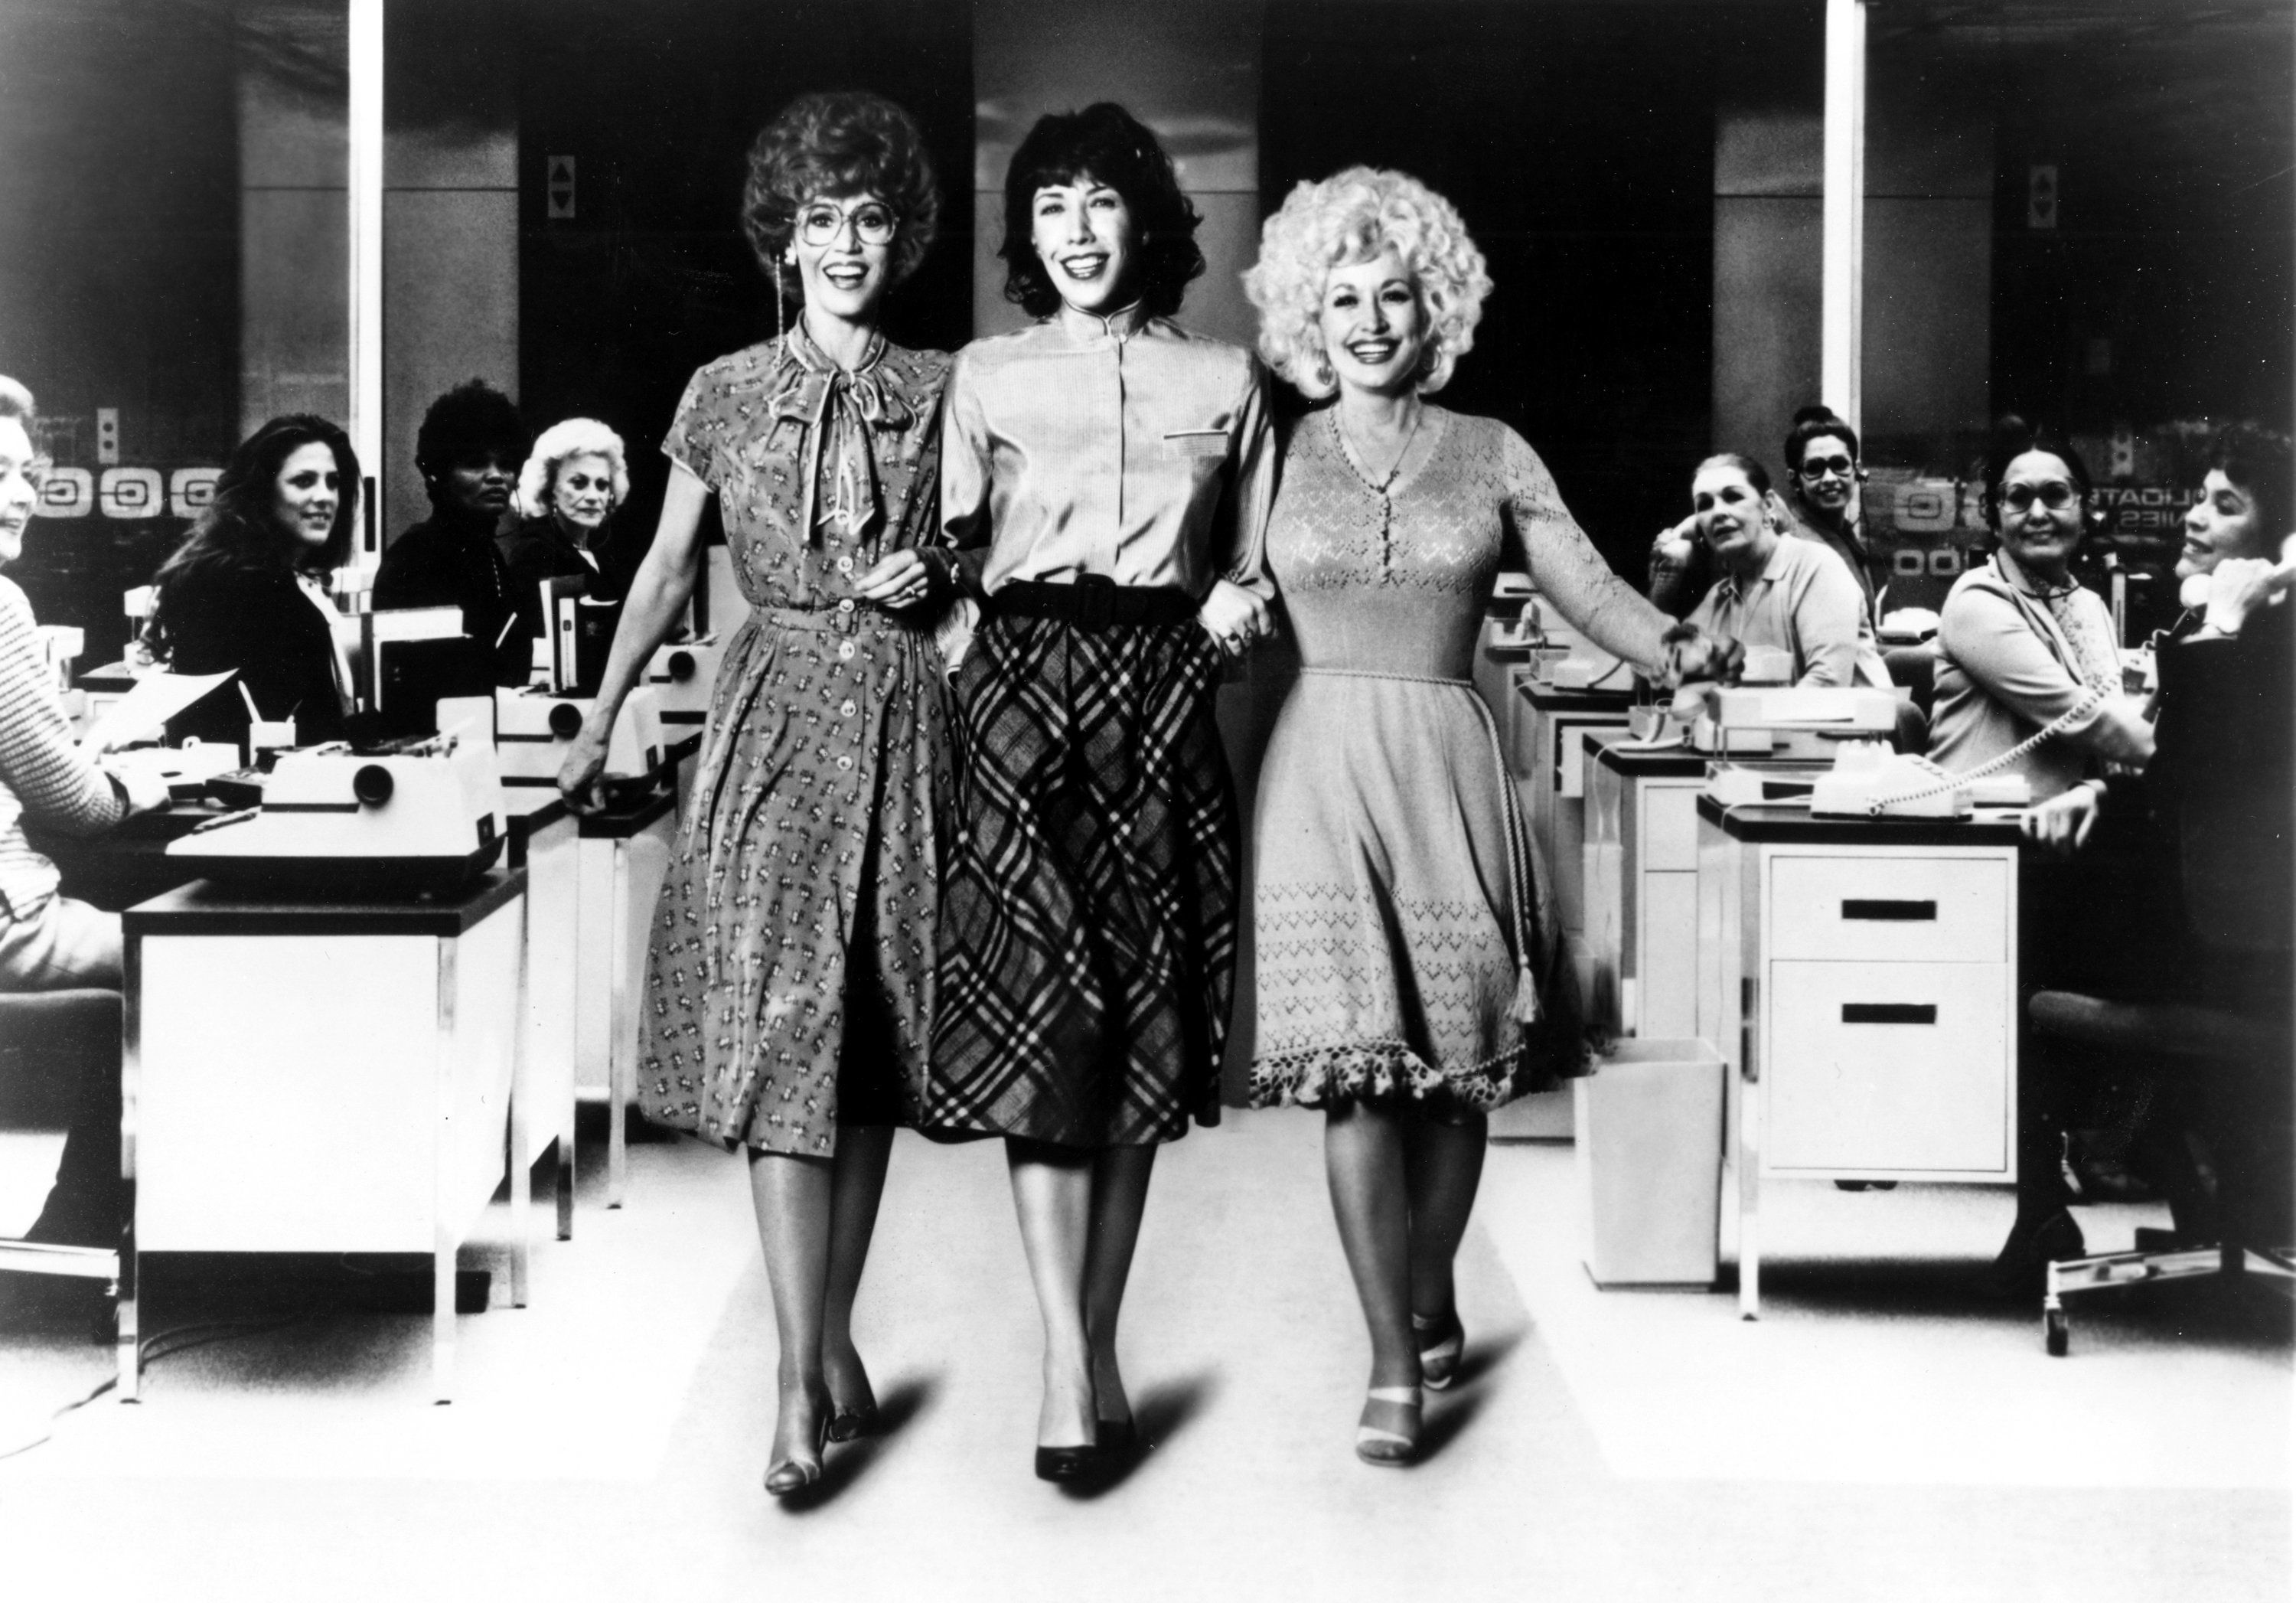 DECEMBER 19:  (L-R) Jane Fonda, Lily Tomlin and Dolly Parton act in a scene from the movie '9 to 5' which was released on December 19, 1980. (Photo by Michael Ochs Archives/Getty Images)